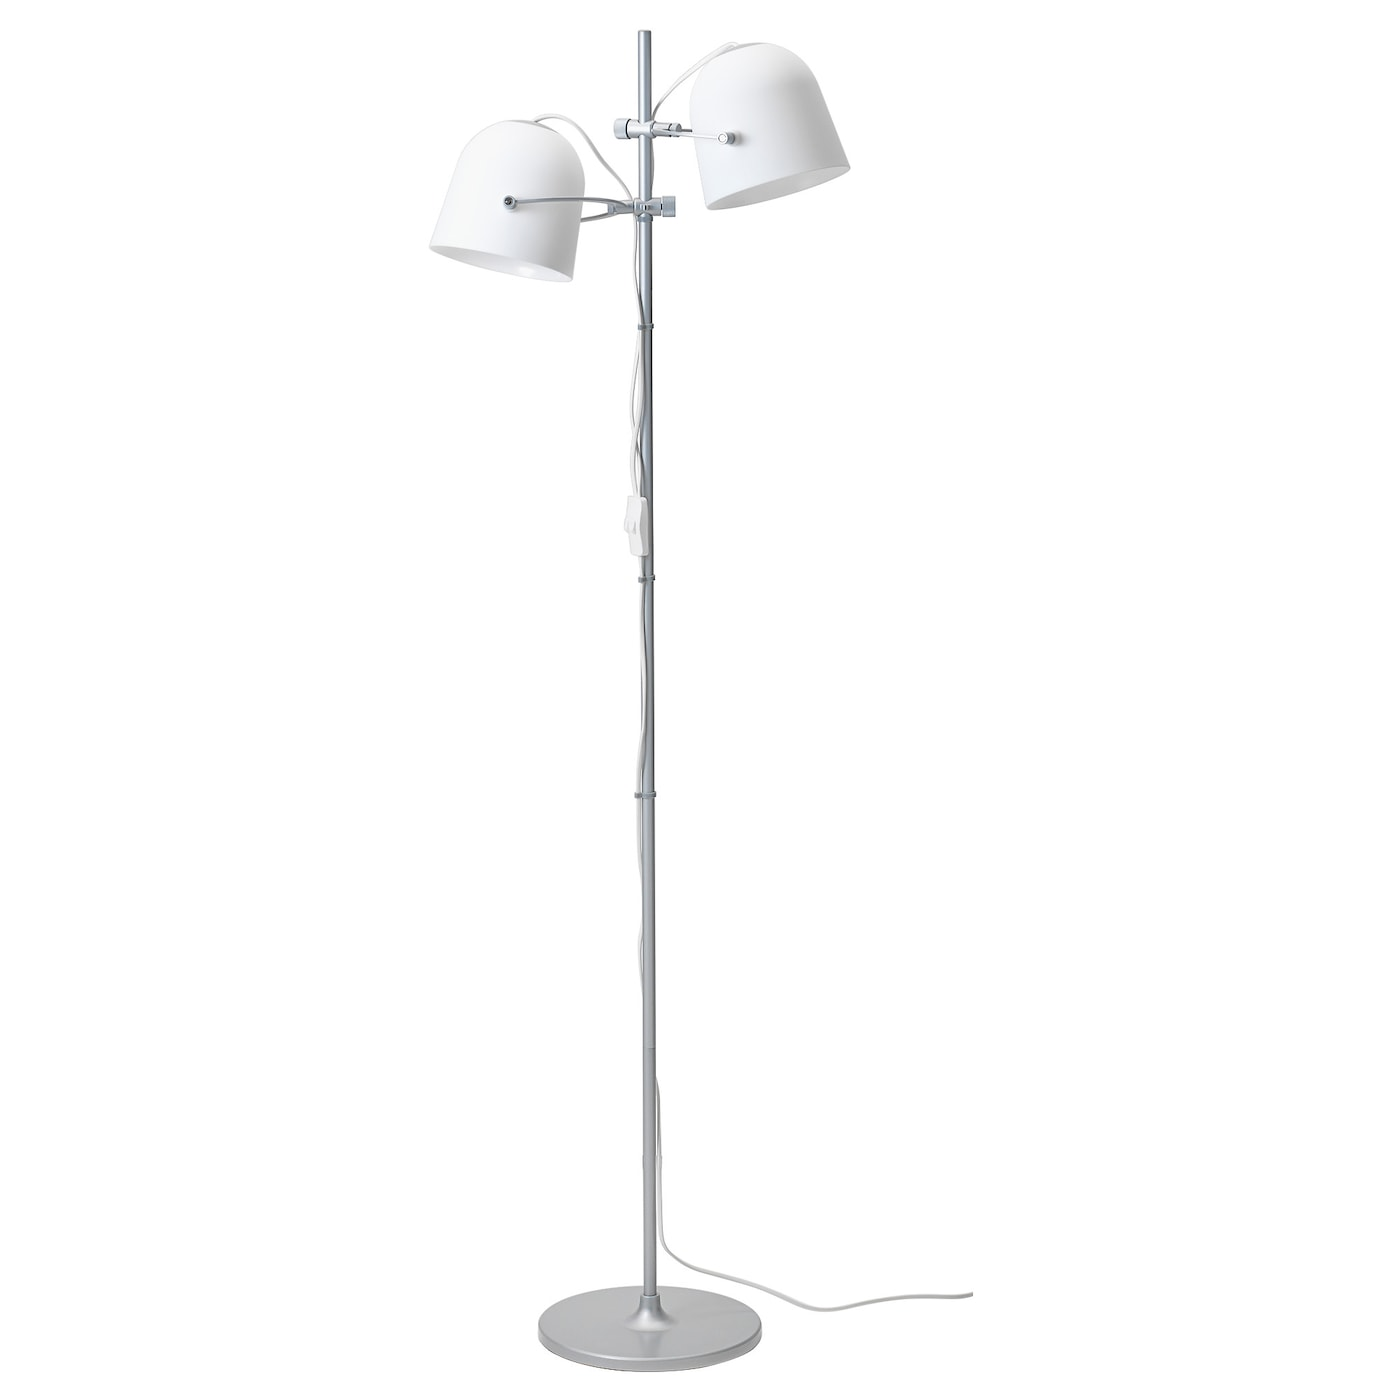 Ikea floor lamps shop online in store ikea svirvel floor lamp with 2 shades aloadofball Choice Image